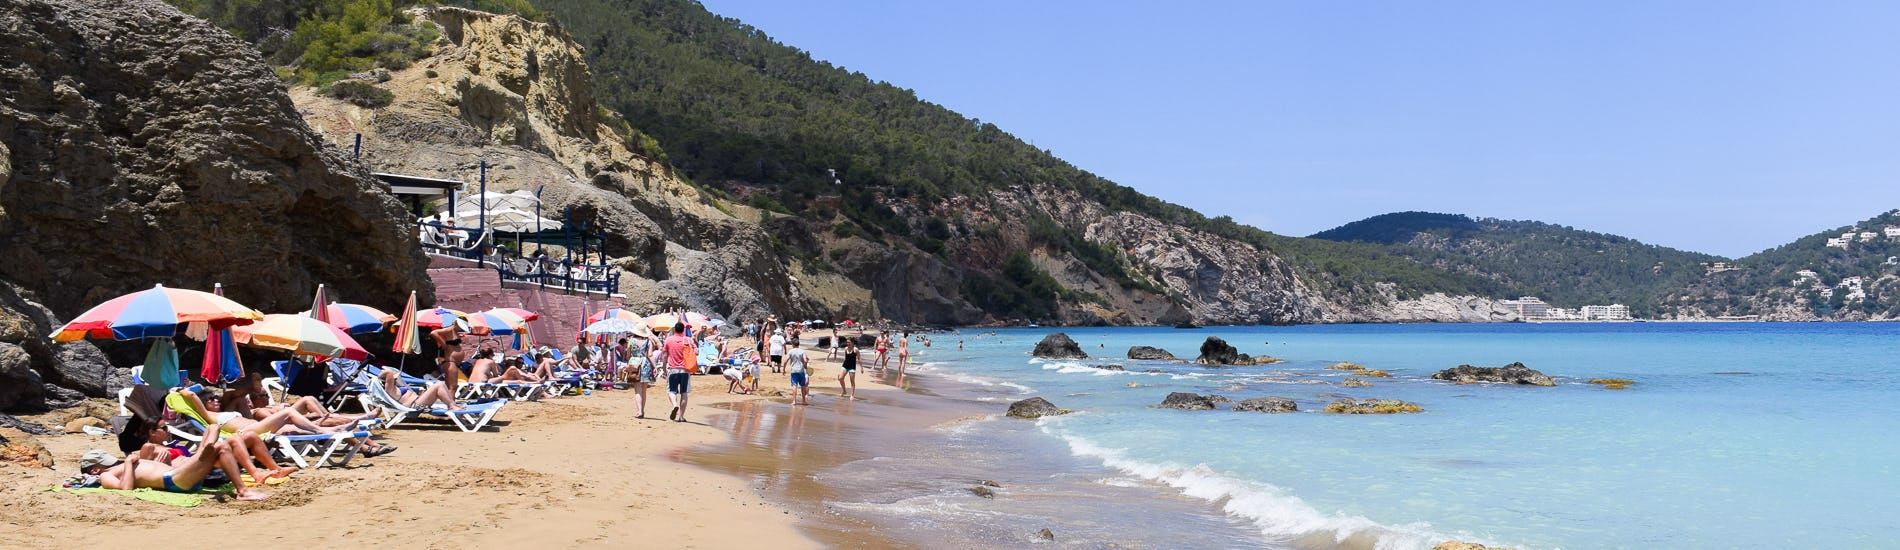 Aguas Blancas Ibiza Pictures Videos Insider Tips